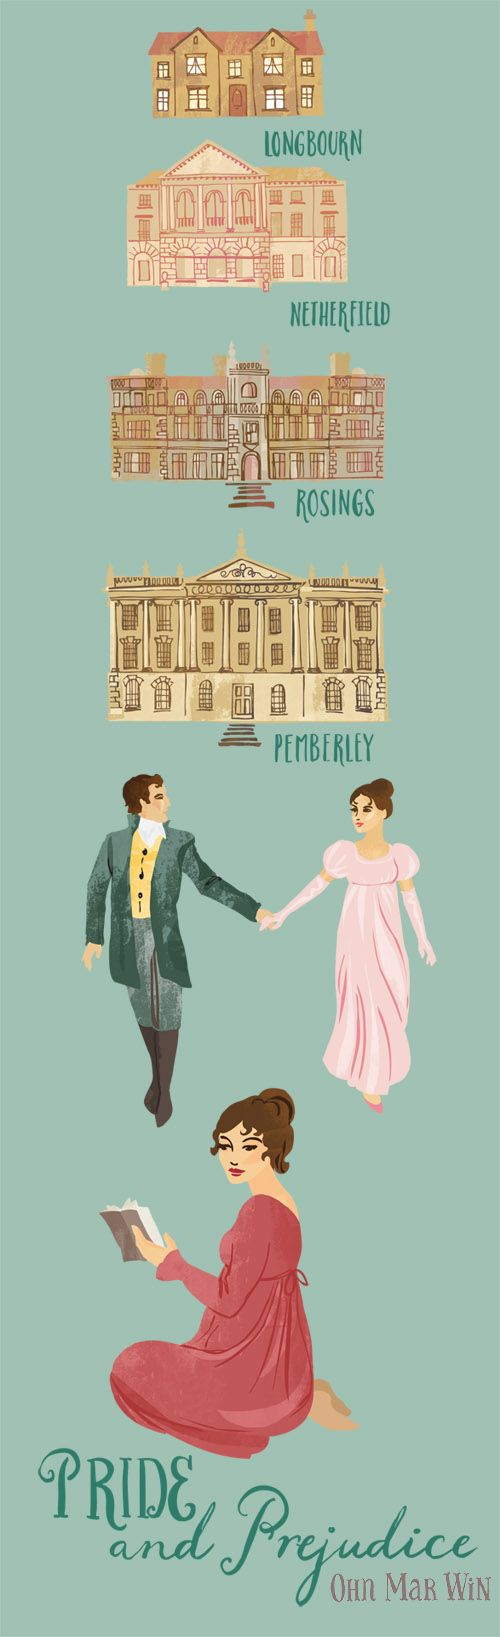 best ideas about ~pride and prejudice darcy an illustrated map of the key locations from jane austen s famous book pride and prejudice